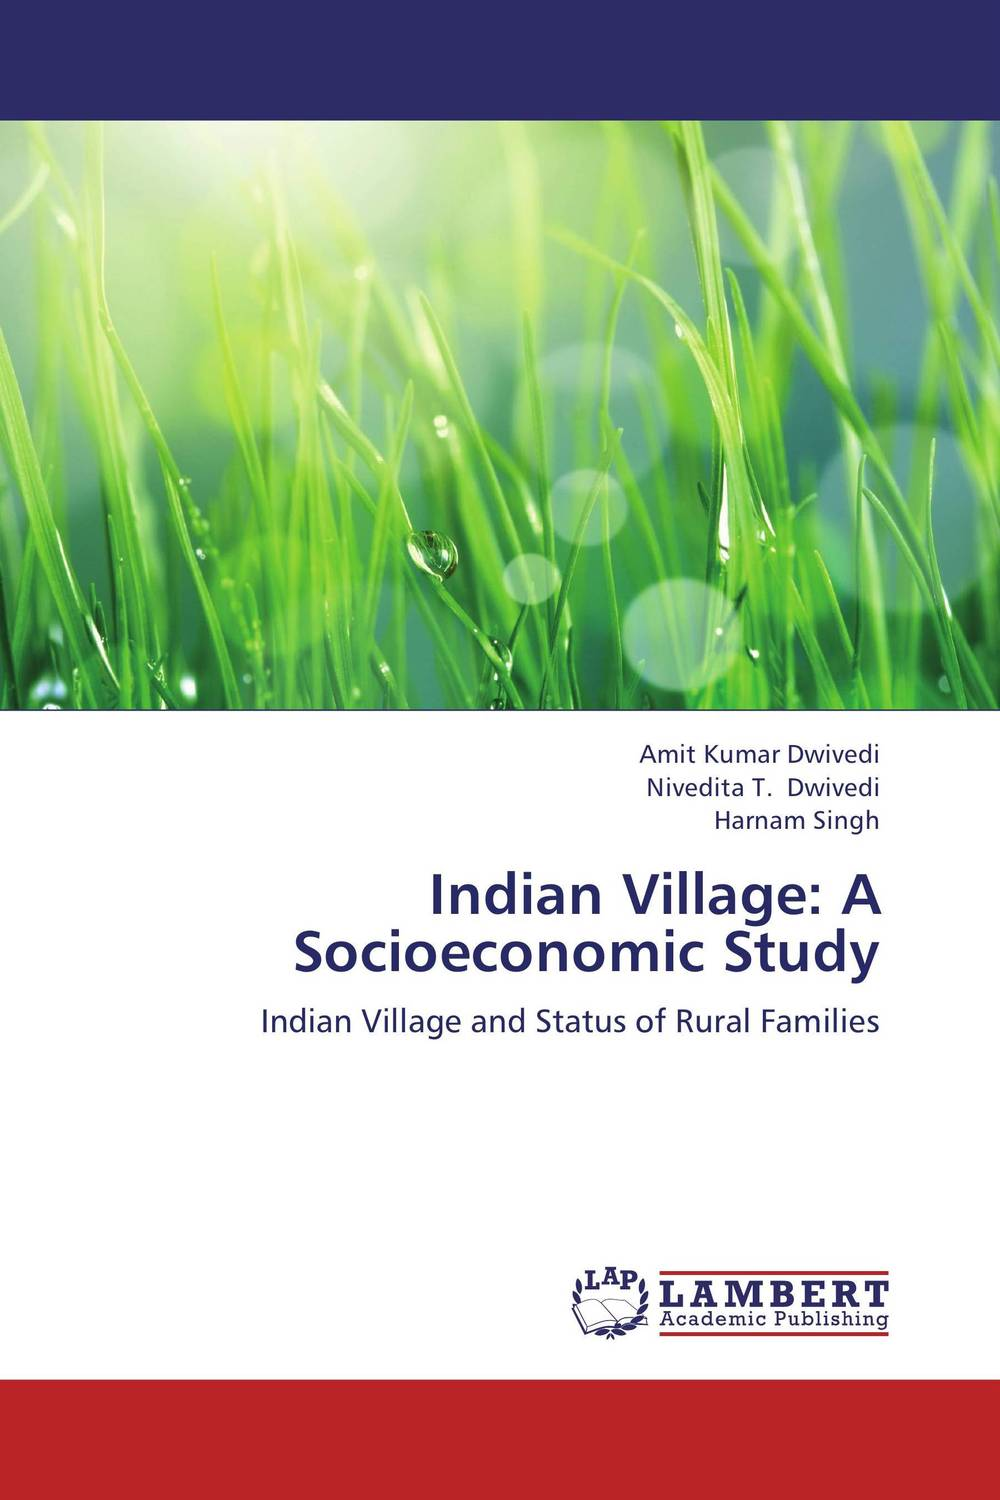 Indian Village: A Socioeconomic Study pastoralism and agriculture pennar basin india